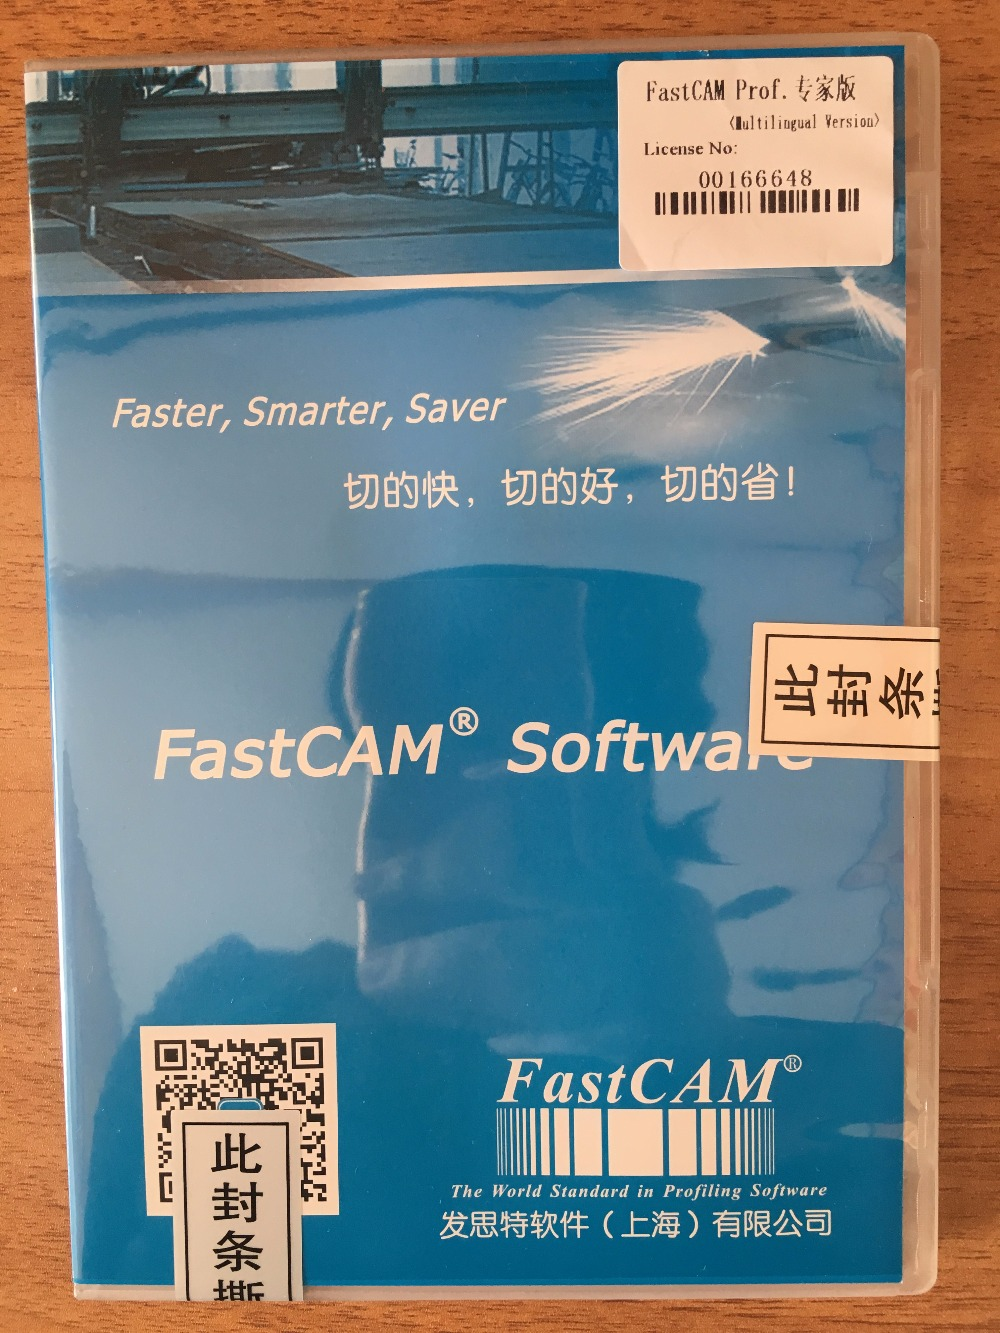 Fastcam Nesting Software Professional version for CNC Plasma Cutting Machine